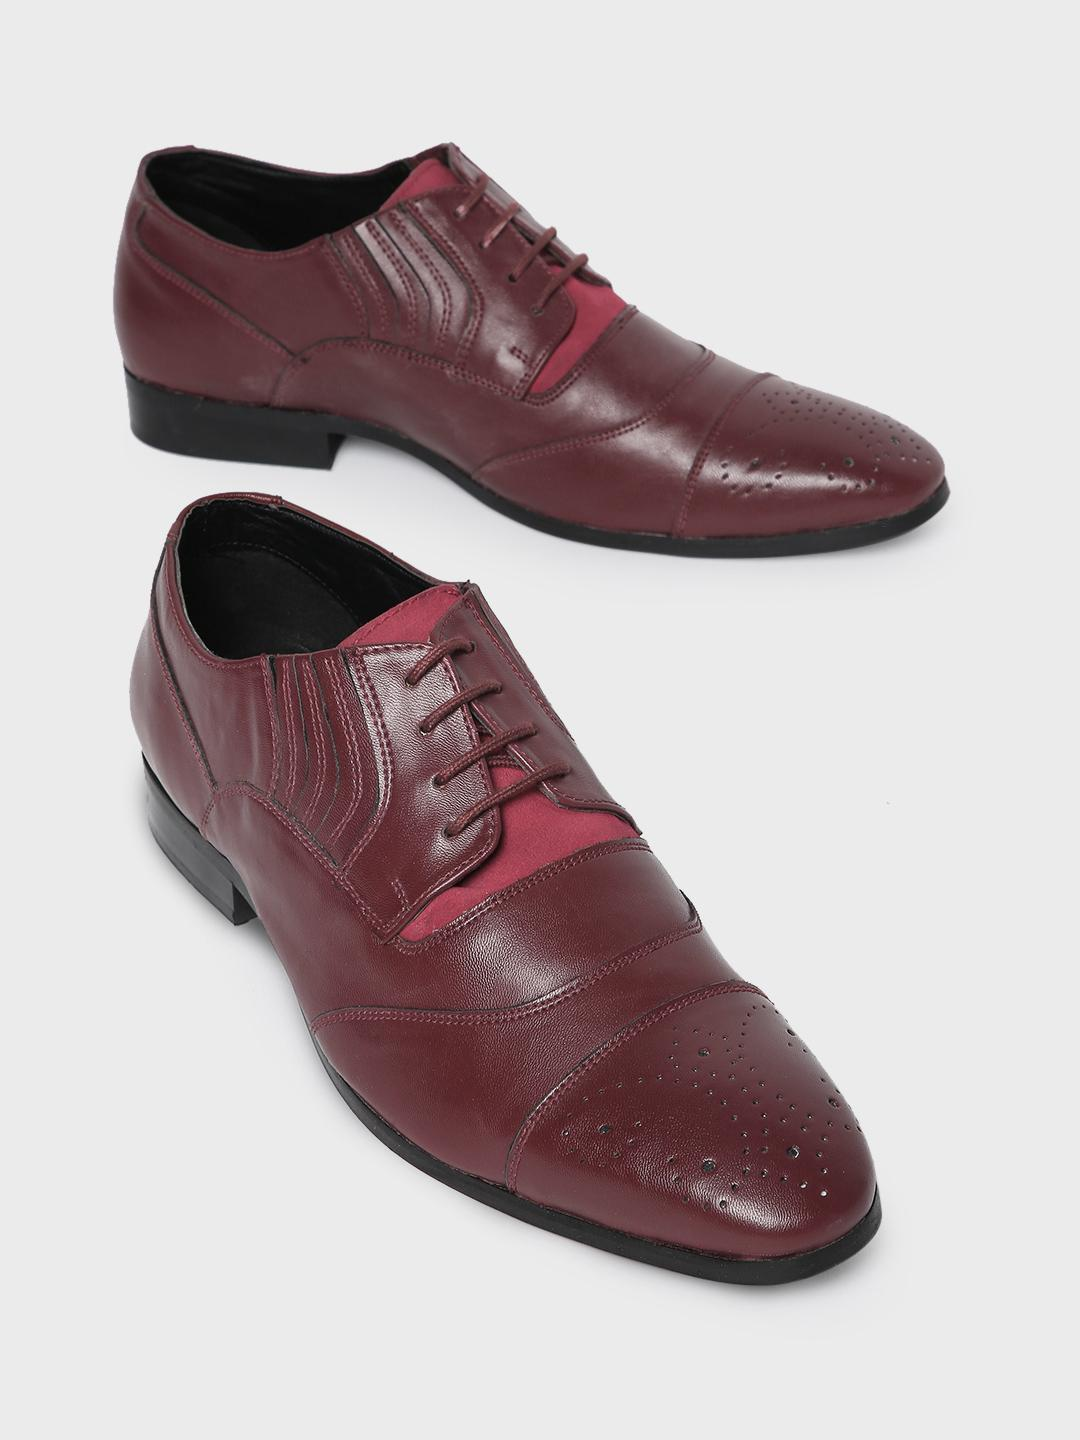 Corso Venezia Red Toe Punches Panelled Oxford Shoes 1